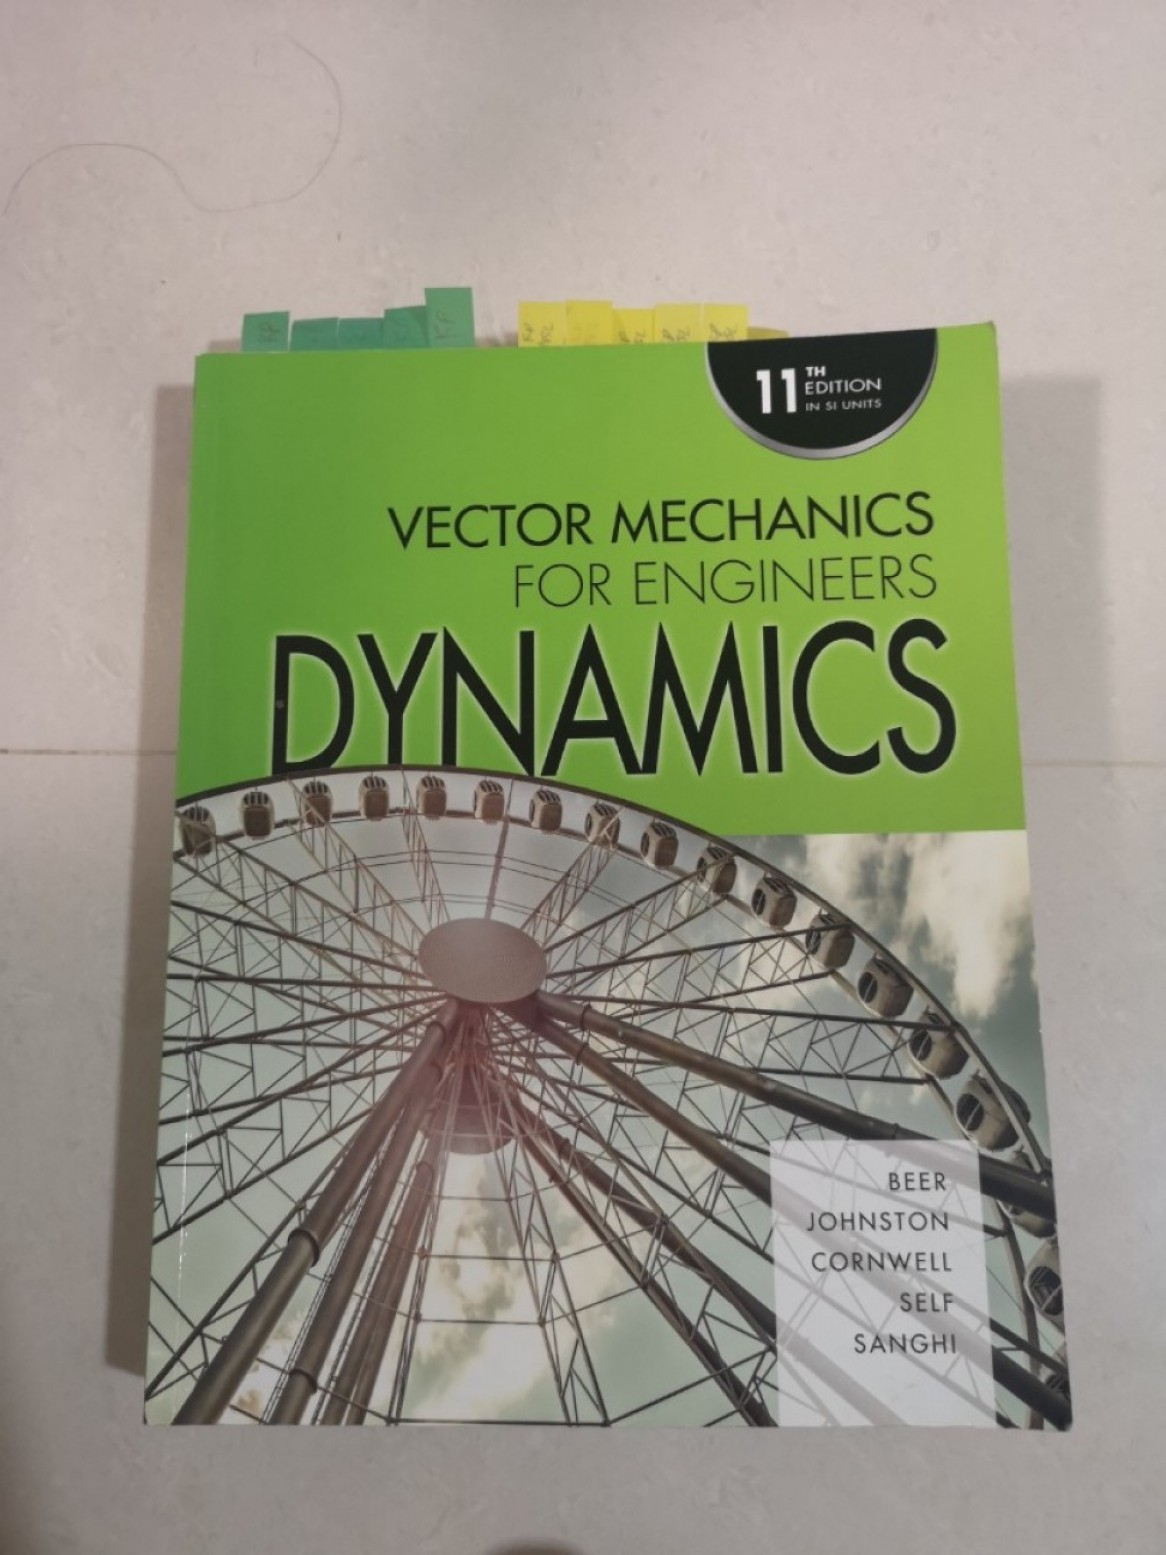 Vector Mechanics For Engineers Dynamics: Vector Mechanics For Engineers Dynamics Th Edition